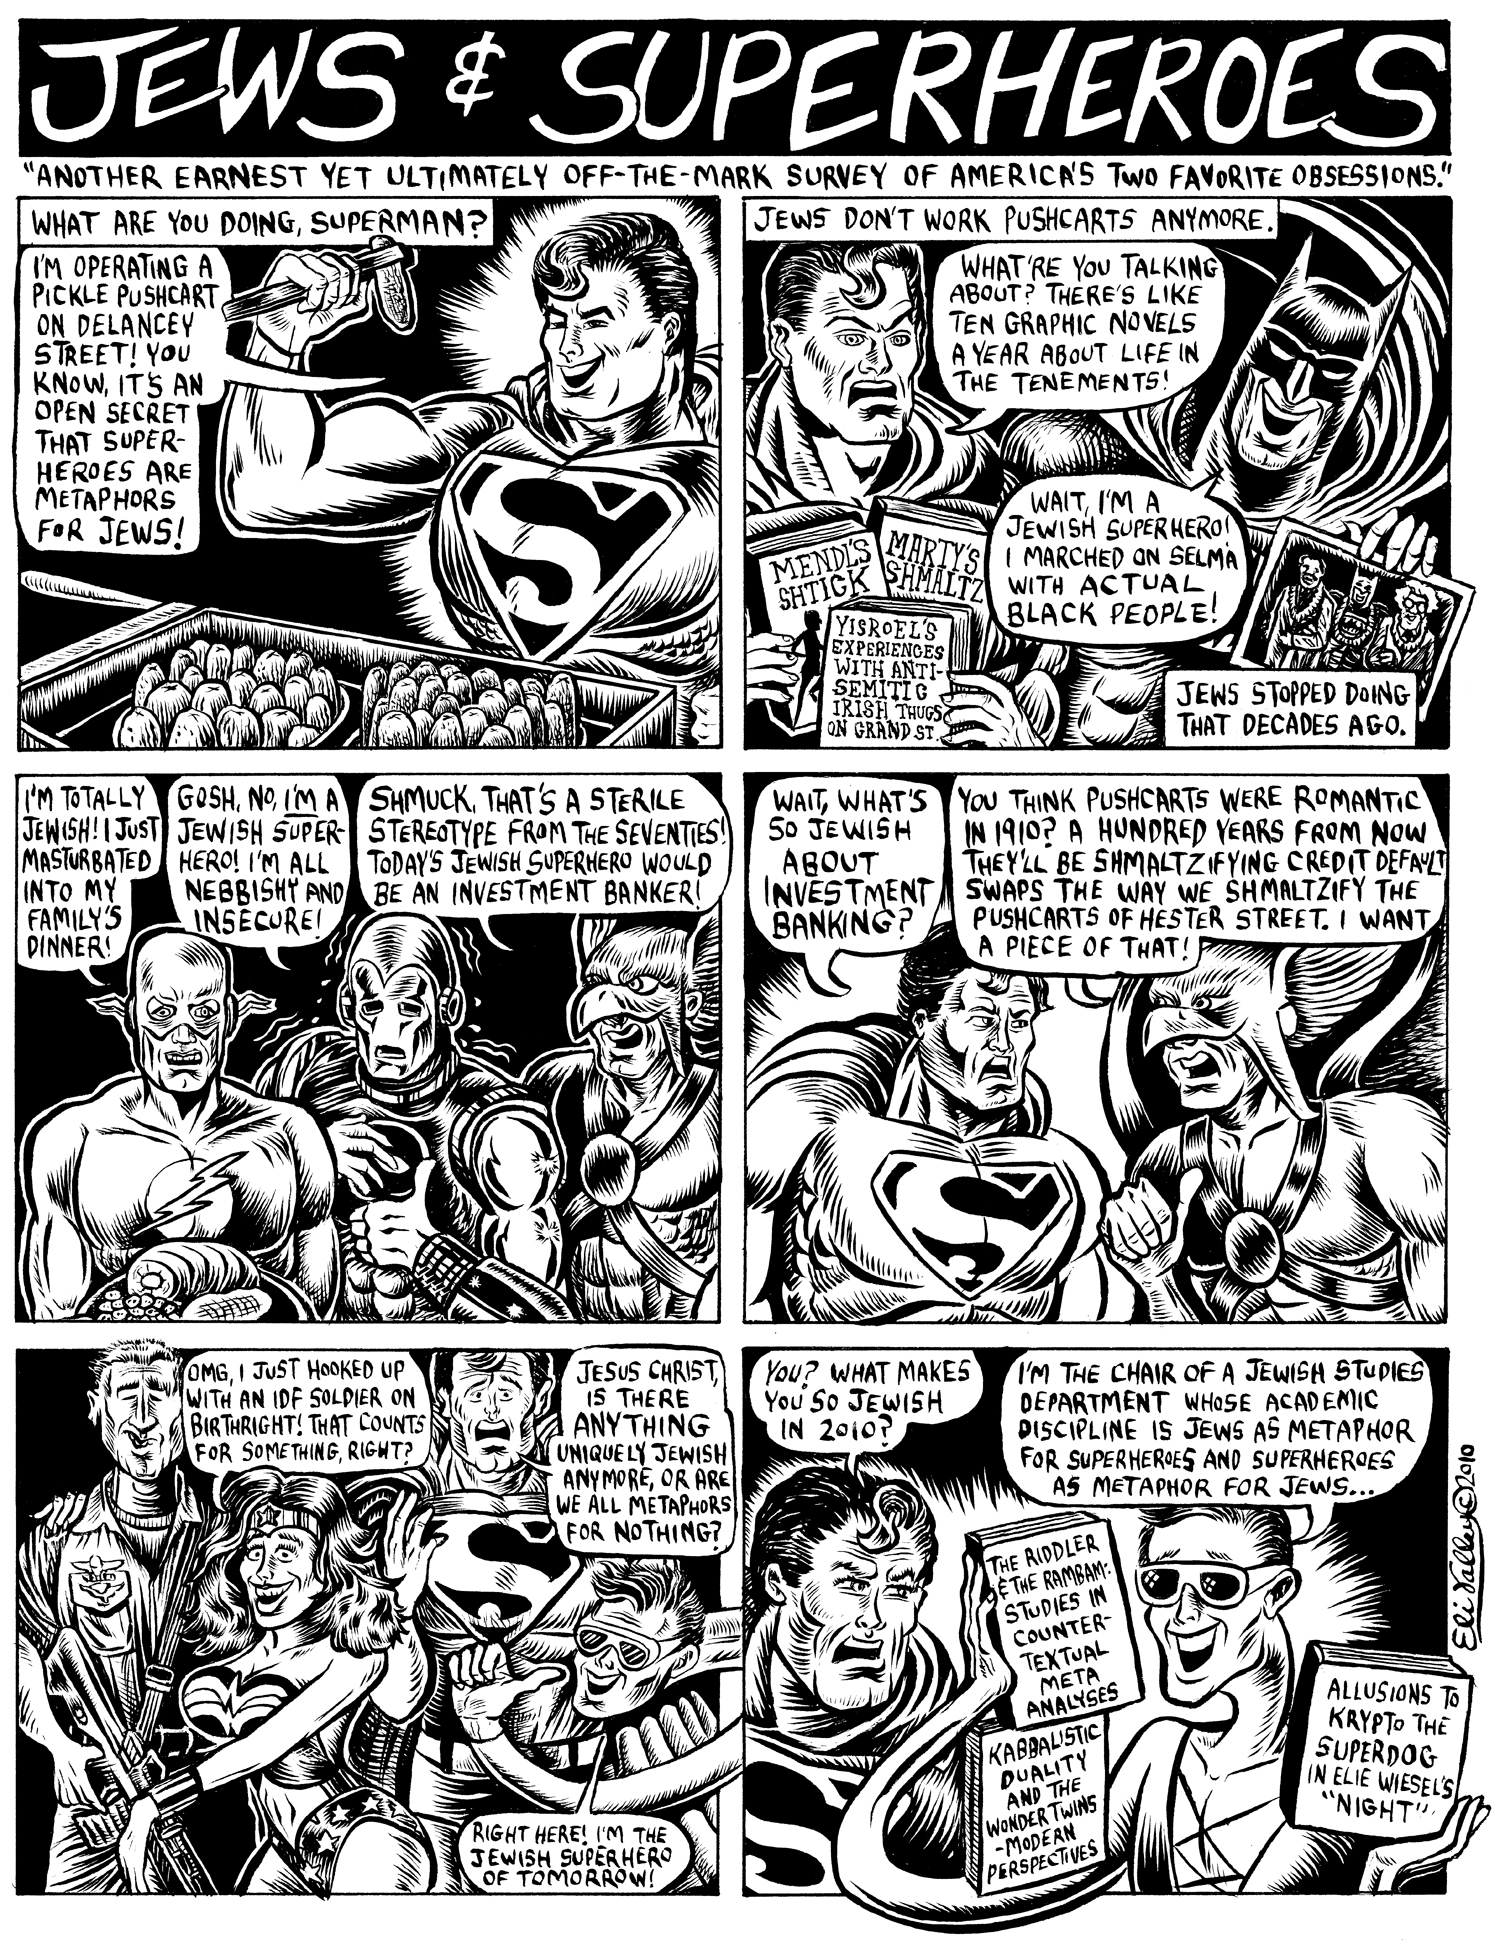 Jews And Superheroes. Shofar, Winter 2011